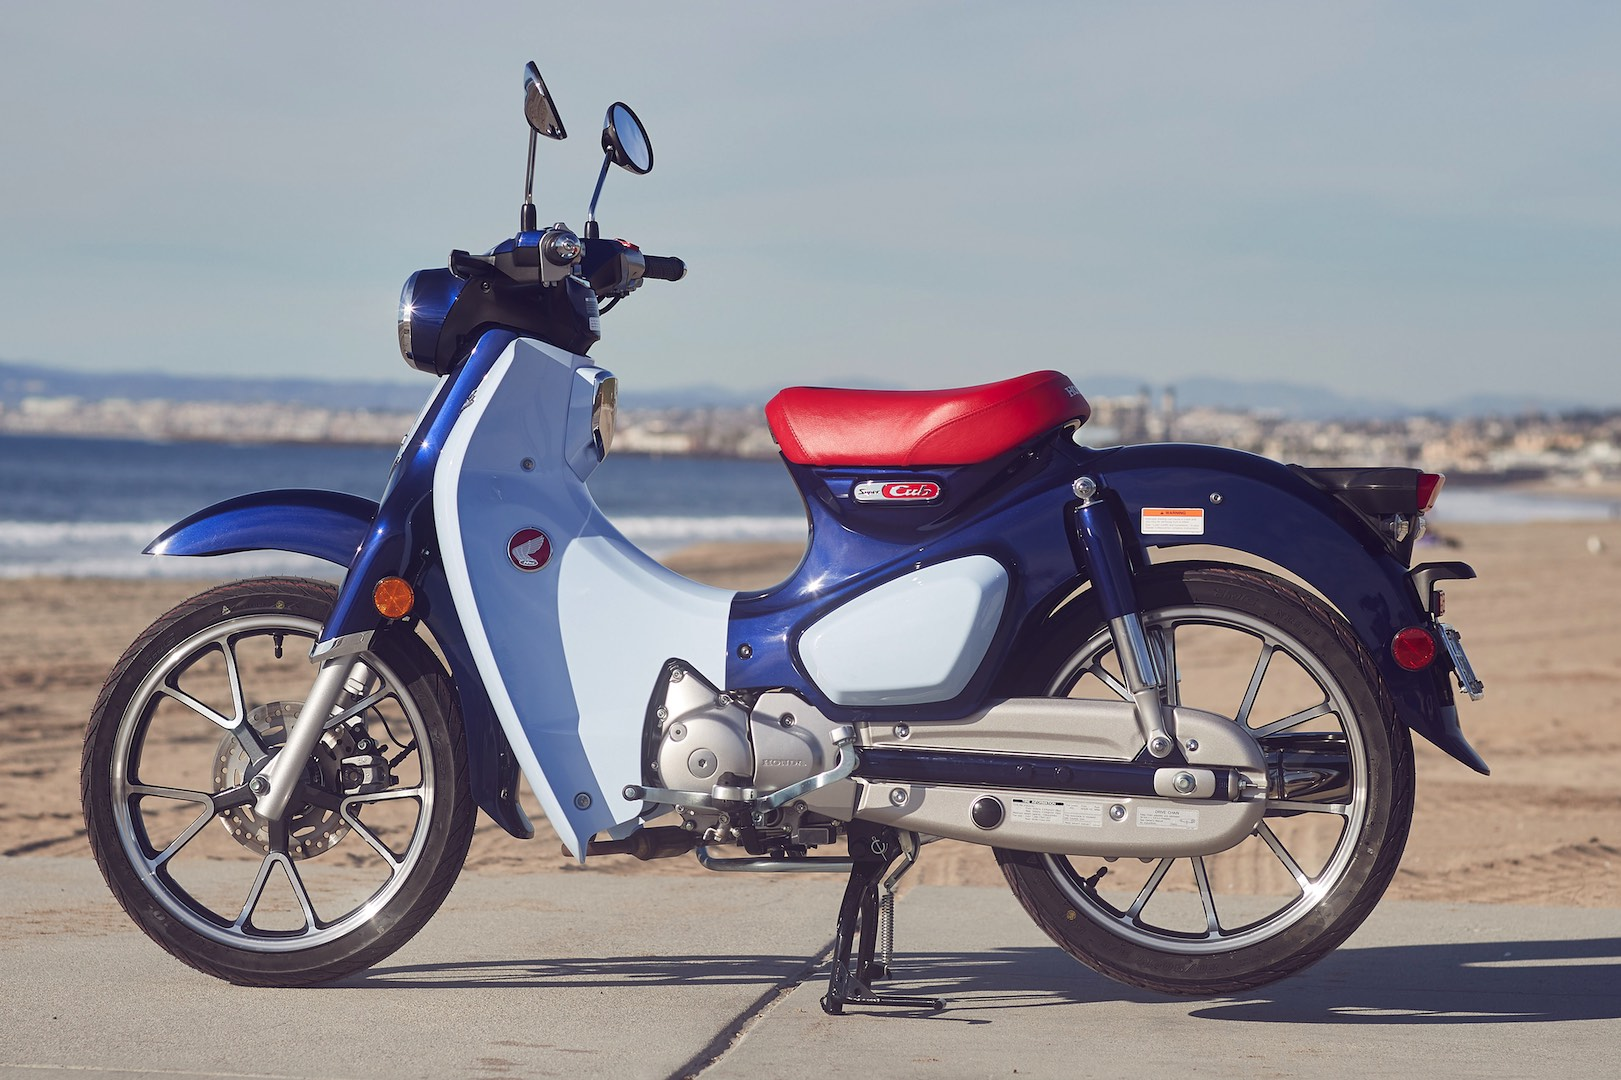 2019 honda super cub c125 abs review 16 fast facts. Black Bedroom Furniture Sets. Home Design Ideas